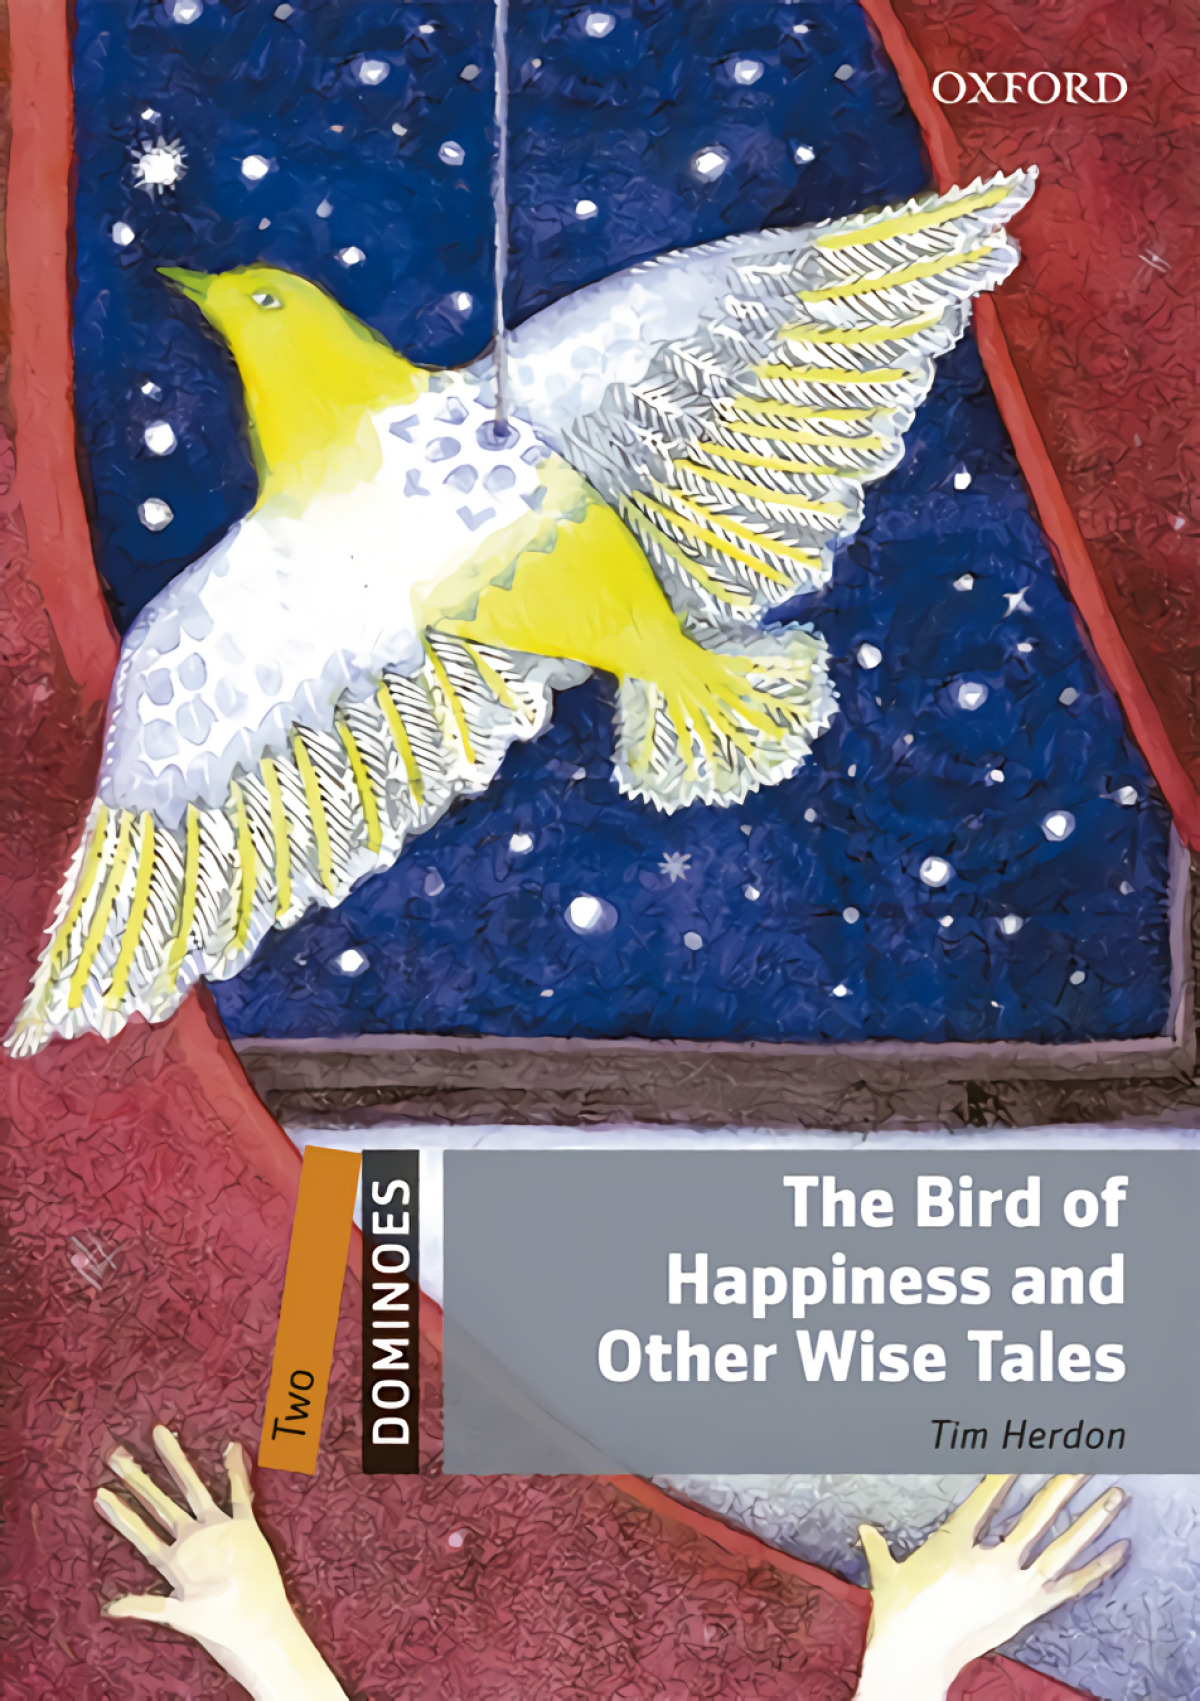 Dominoes 2. The Bird of Happiness and Other Wise Tales MP3 P 9780194639576